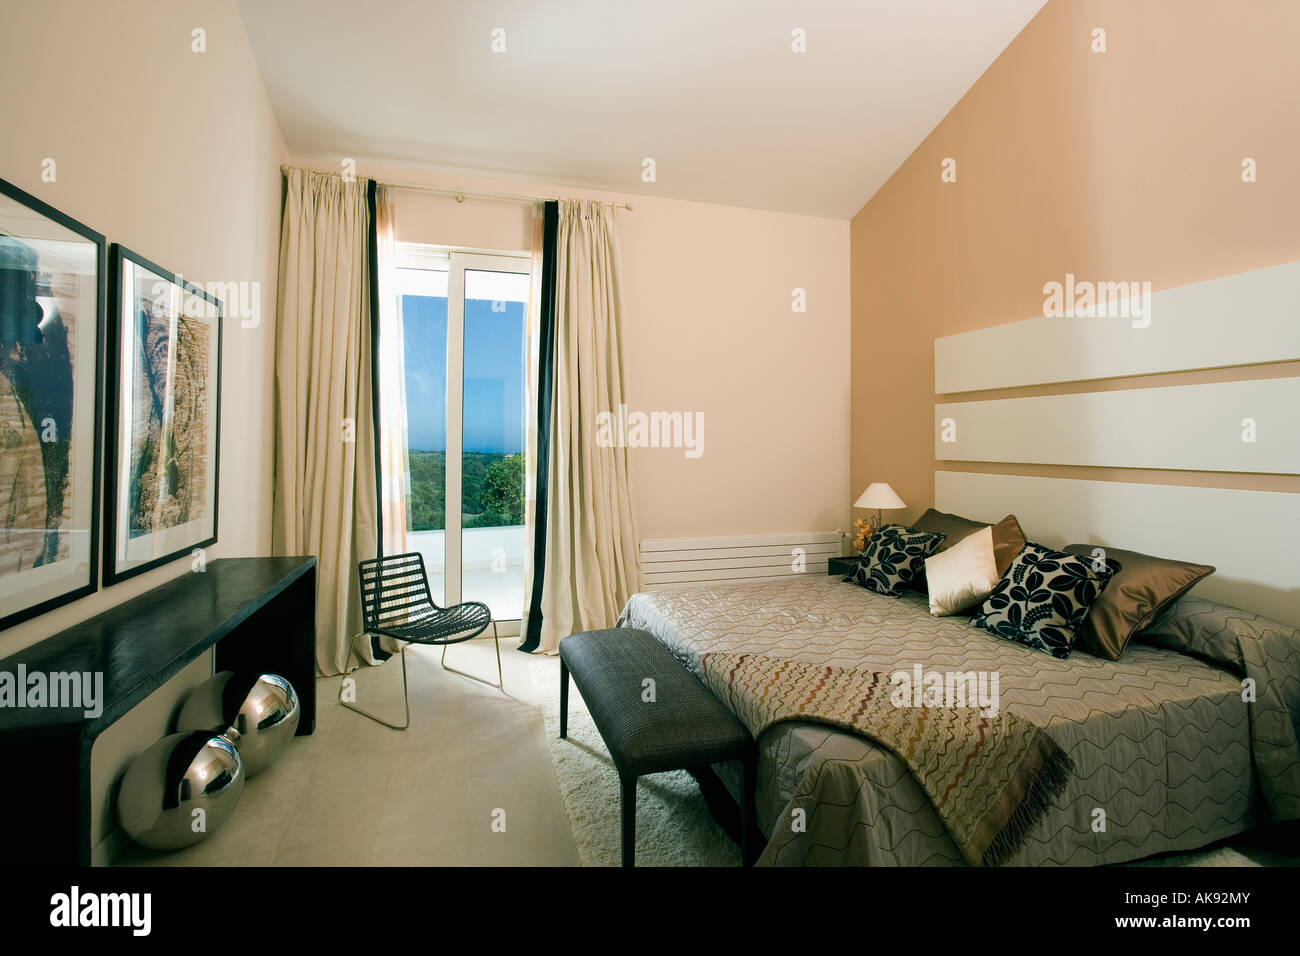 Cream Curtains At French Doors In Modern Bedroom In Spanish Apartment Stock Photo: 14925146